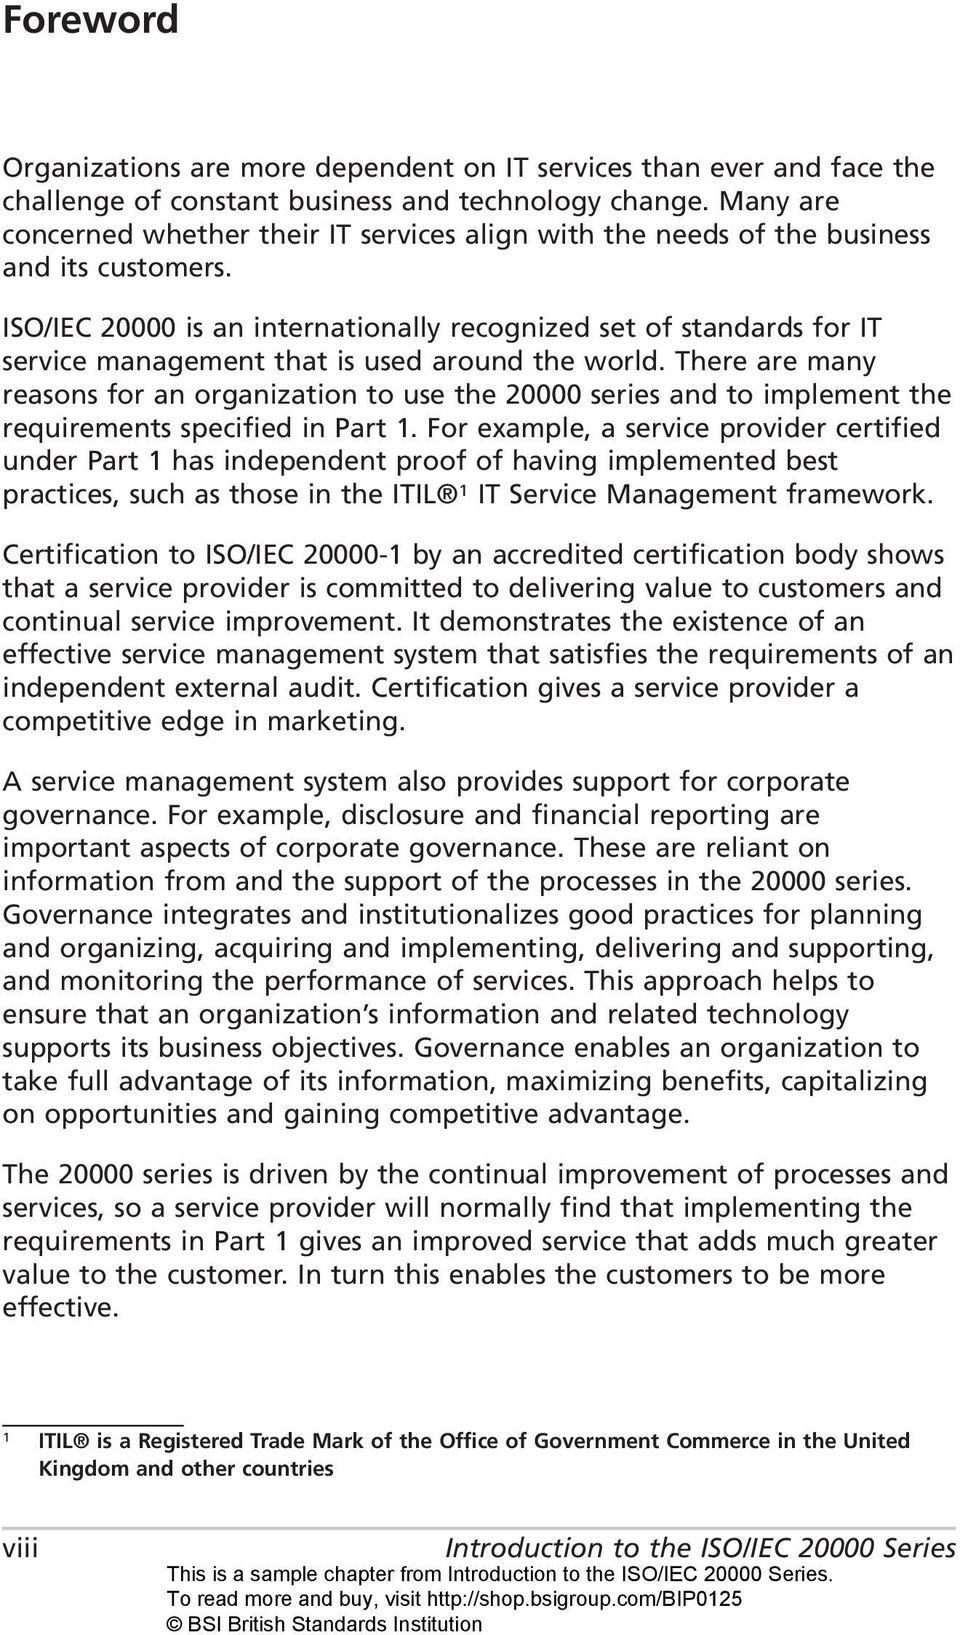 ISO/IEC 20000 is an internationally recognized set of standards for IT service management that is used around the world.